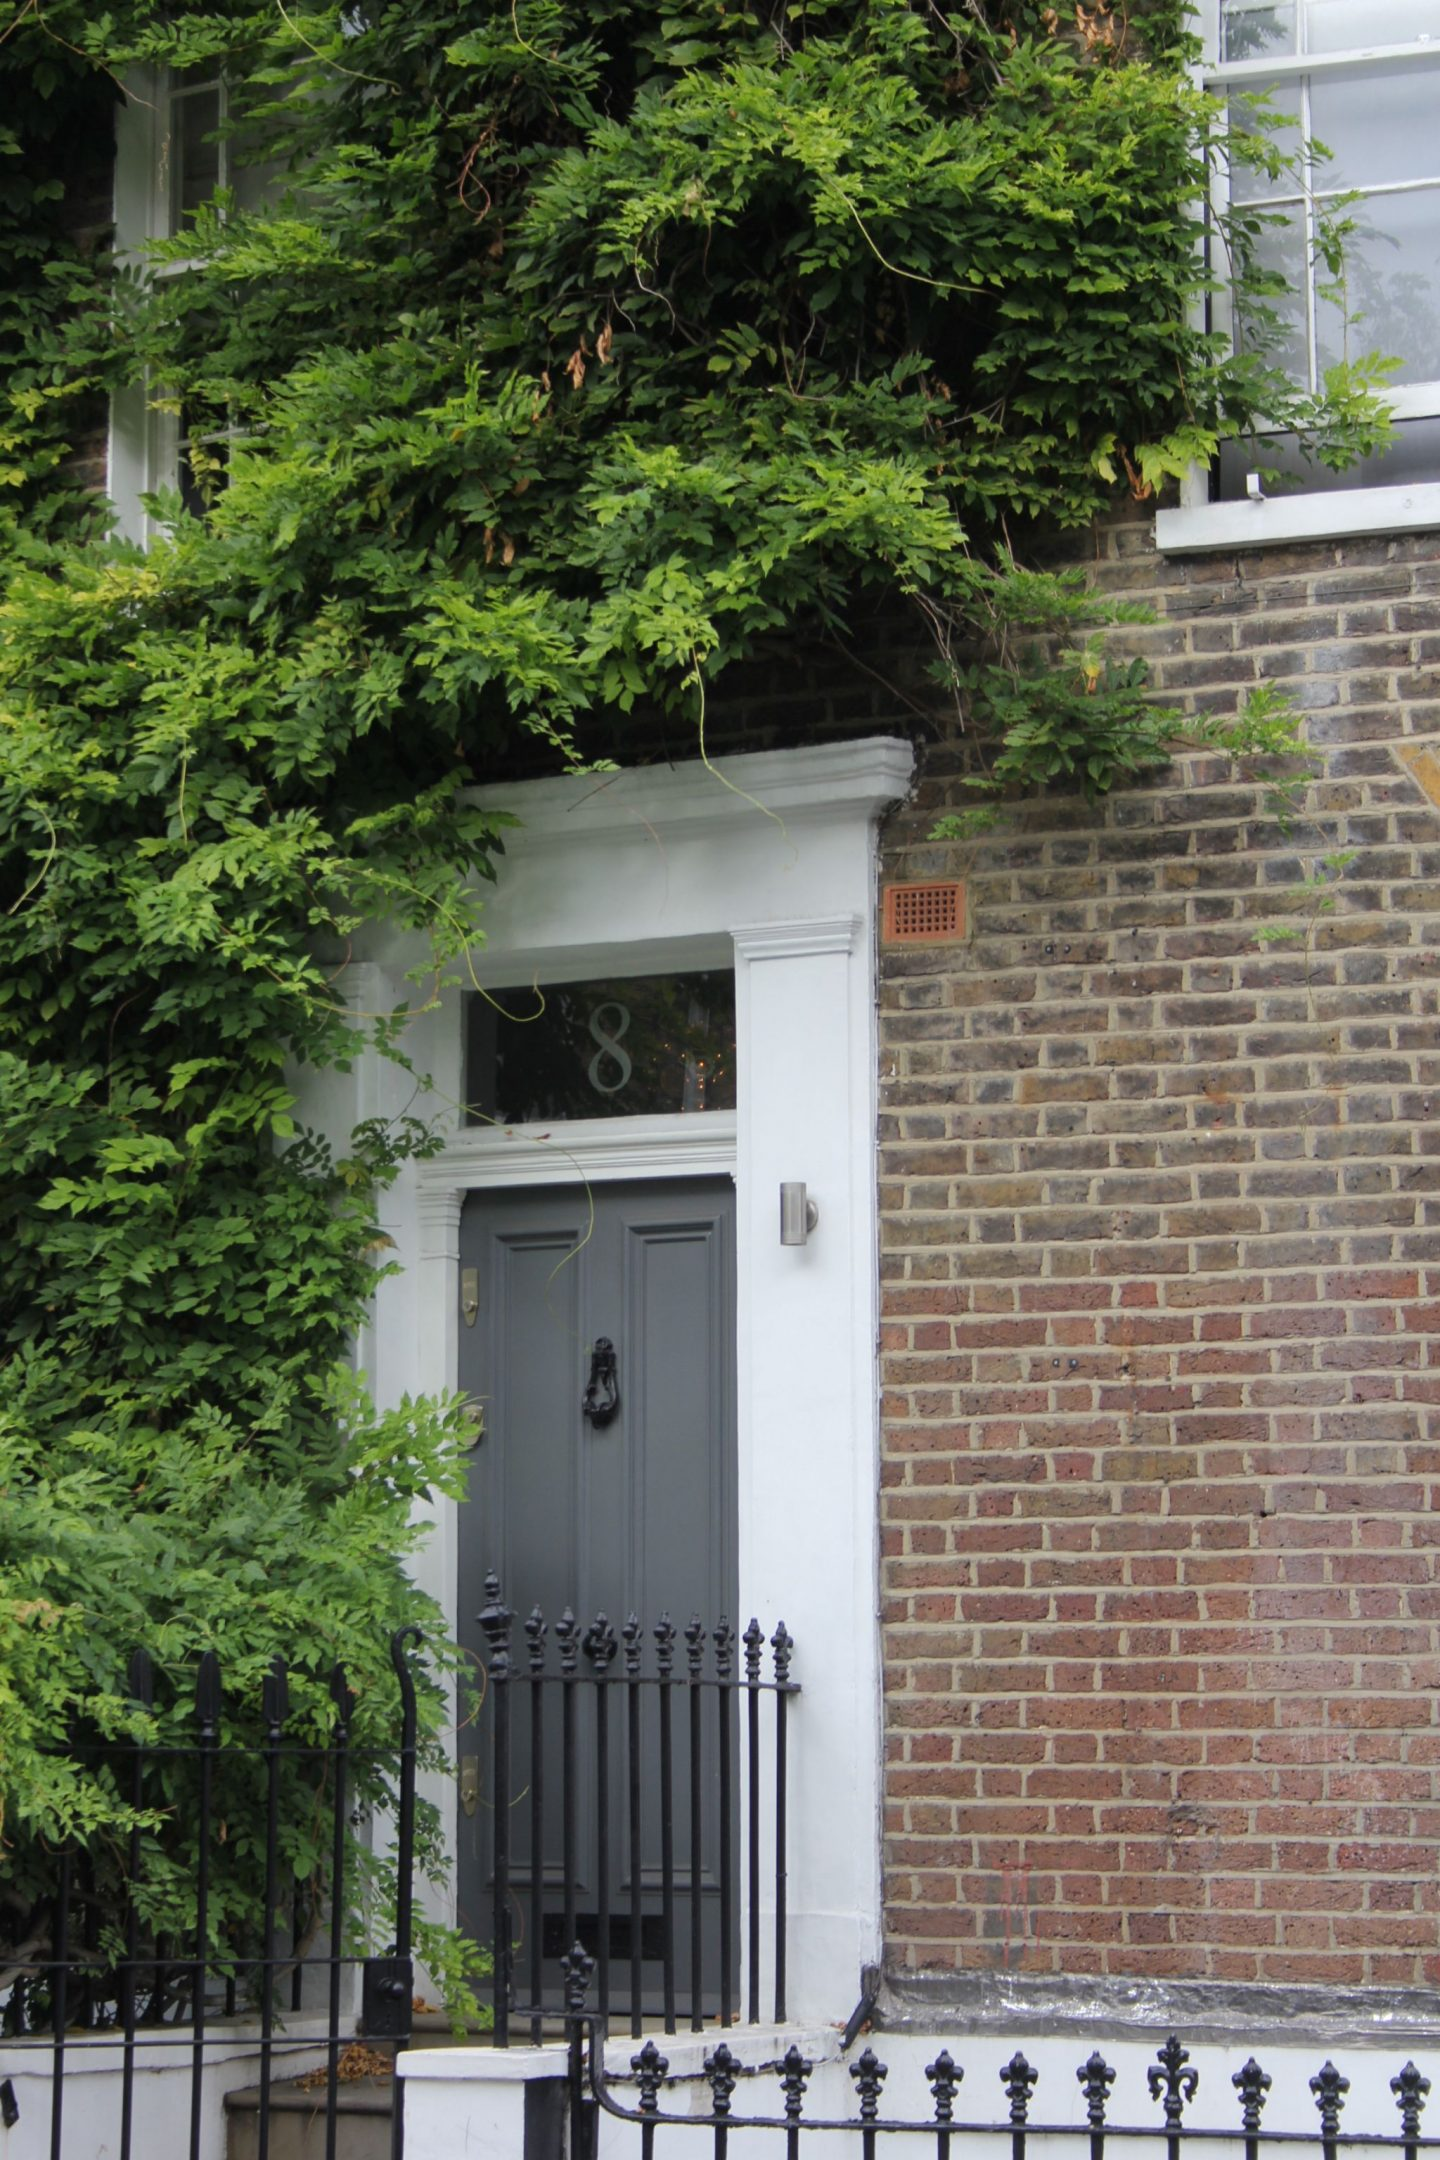 Charming grey door on row house. Hello Lovely Studio. Come tour these gorgeous front doors in Notting Hill and Holland Park...certainly lovely indeed. Curb appeal and Paint Color Inspiration. Lovely London Doors & Paint Color Ideas!